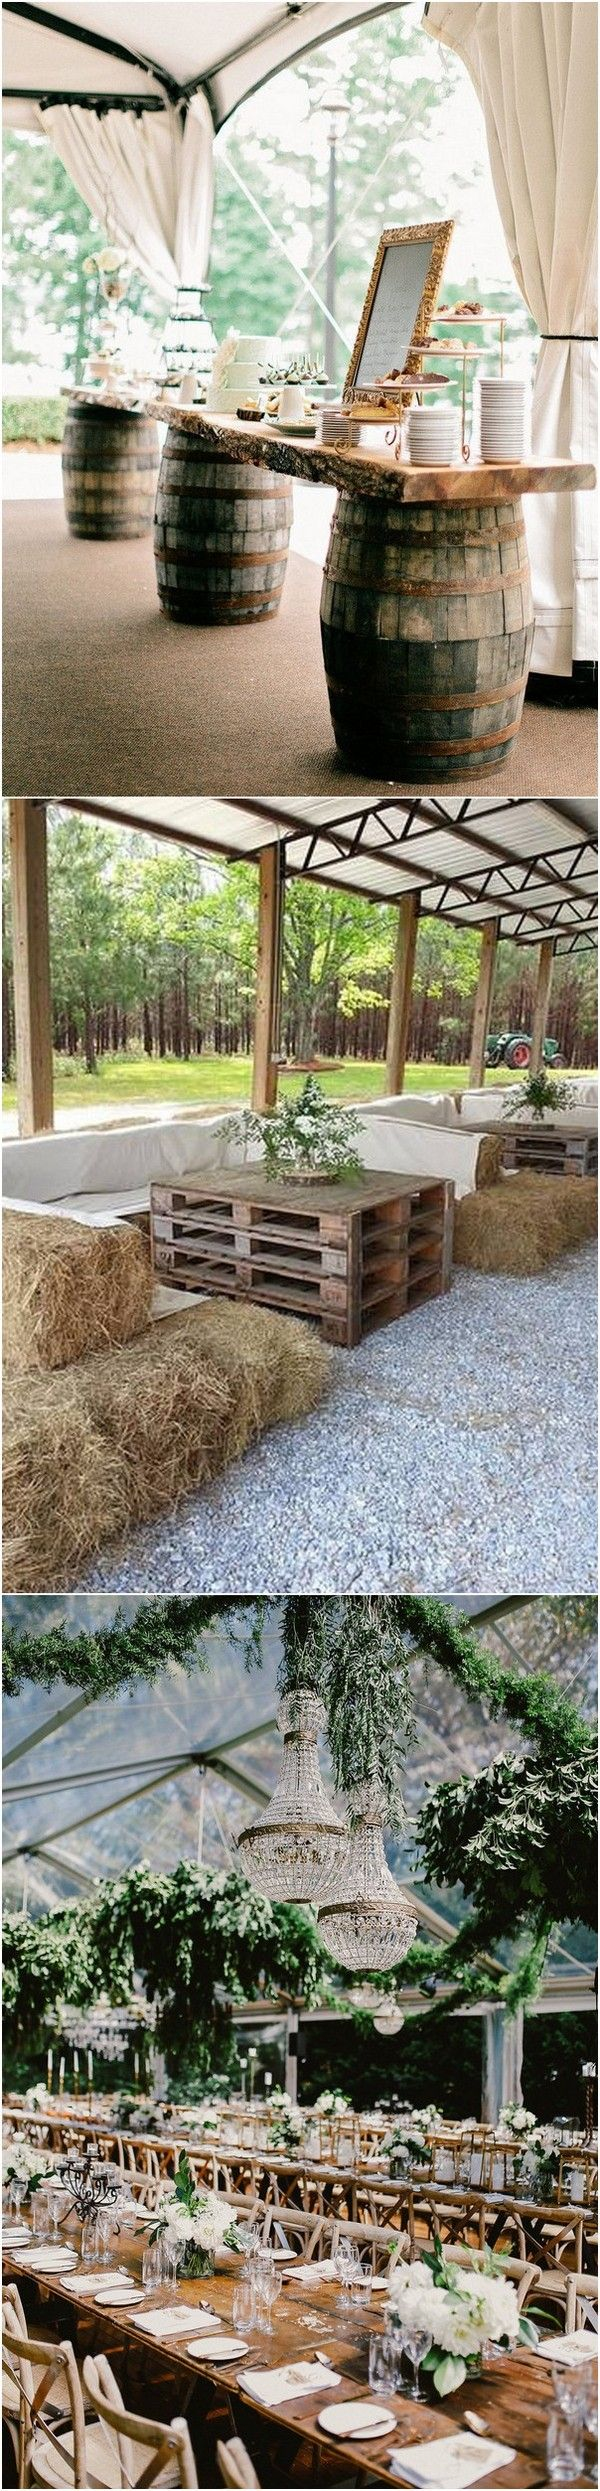 Pallet wedding decor ideas  Trending Tented Wedding Reception Ideas Youull Love  Page  of